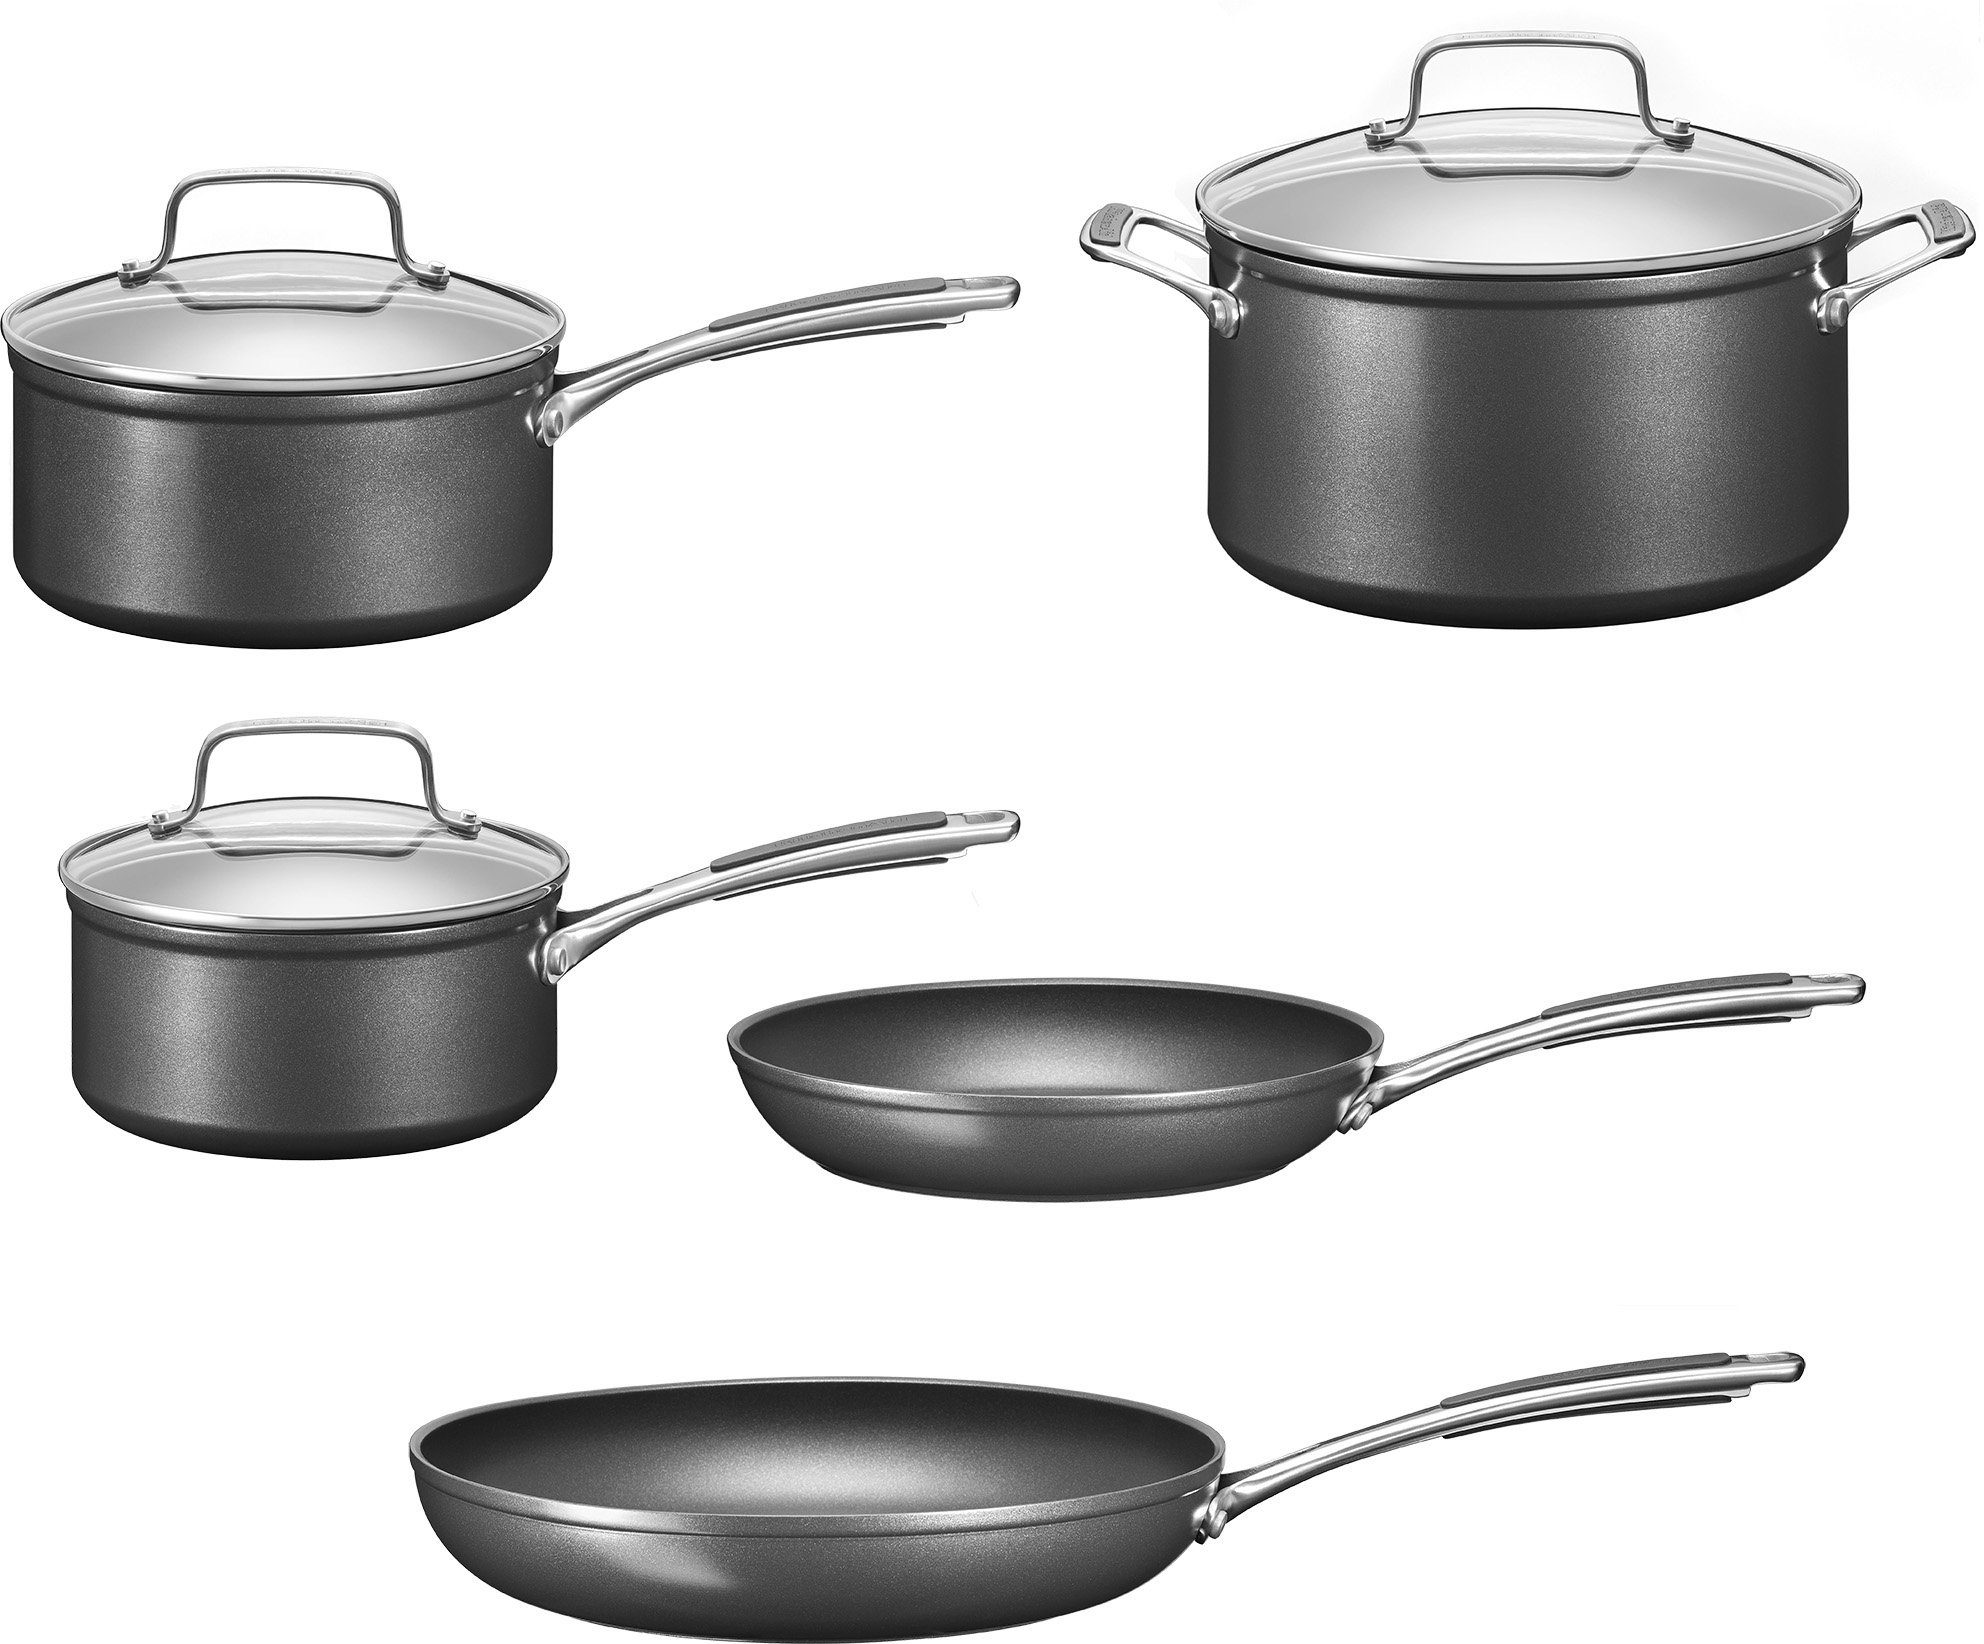 KitchenAid Kochgeschirr-Set, Aluminium, Induktion